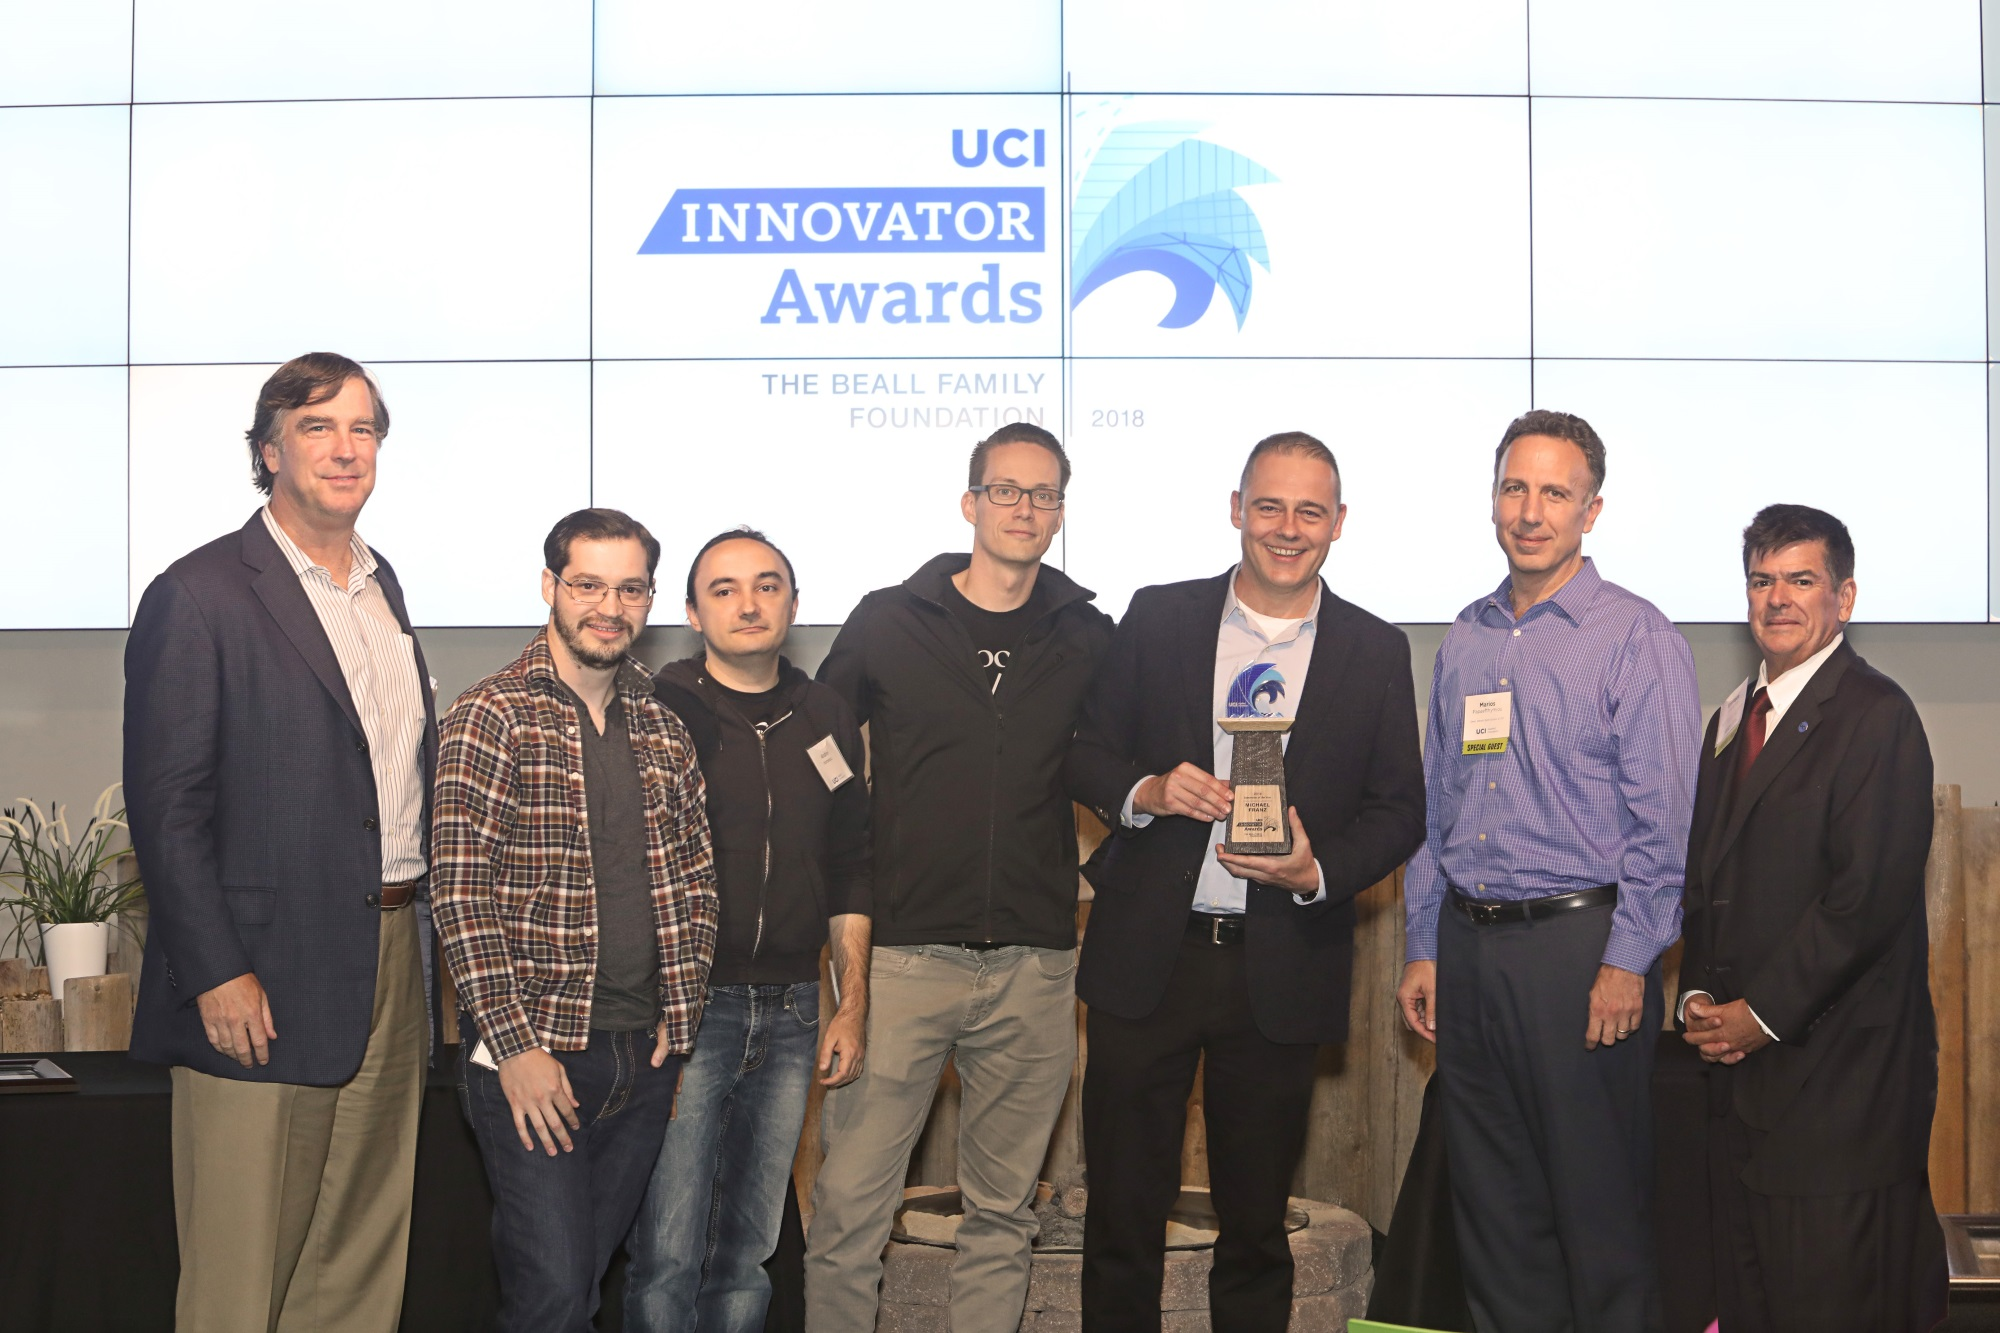 Professor Franz Receives UCI Applied Innovation's Inaugural Innovator of the Year Award